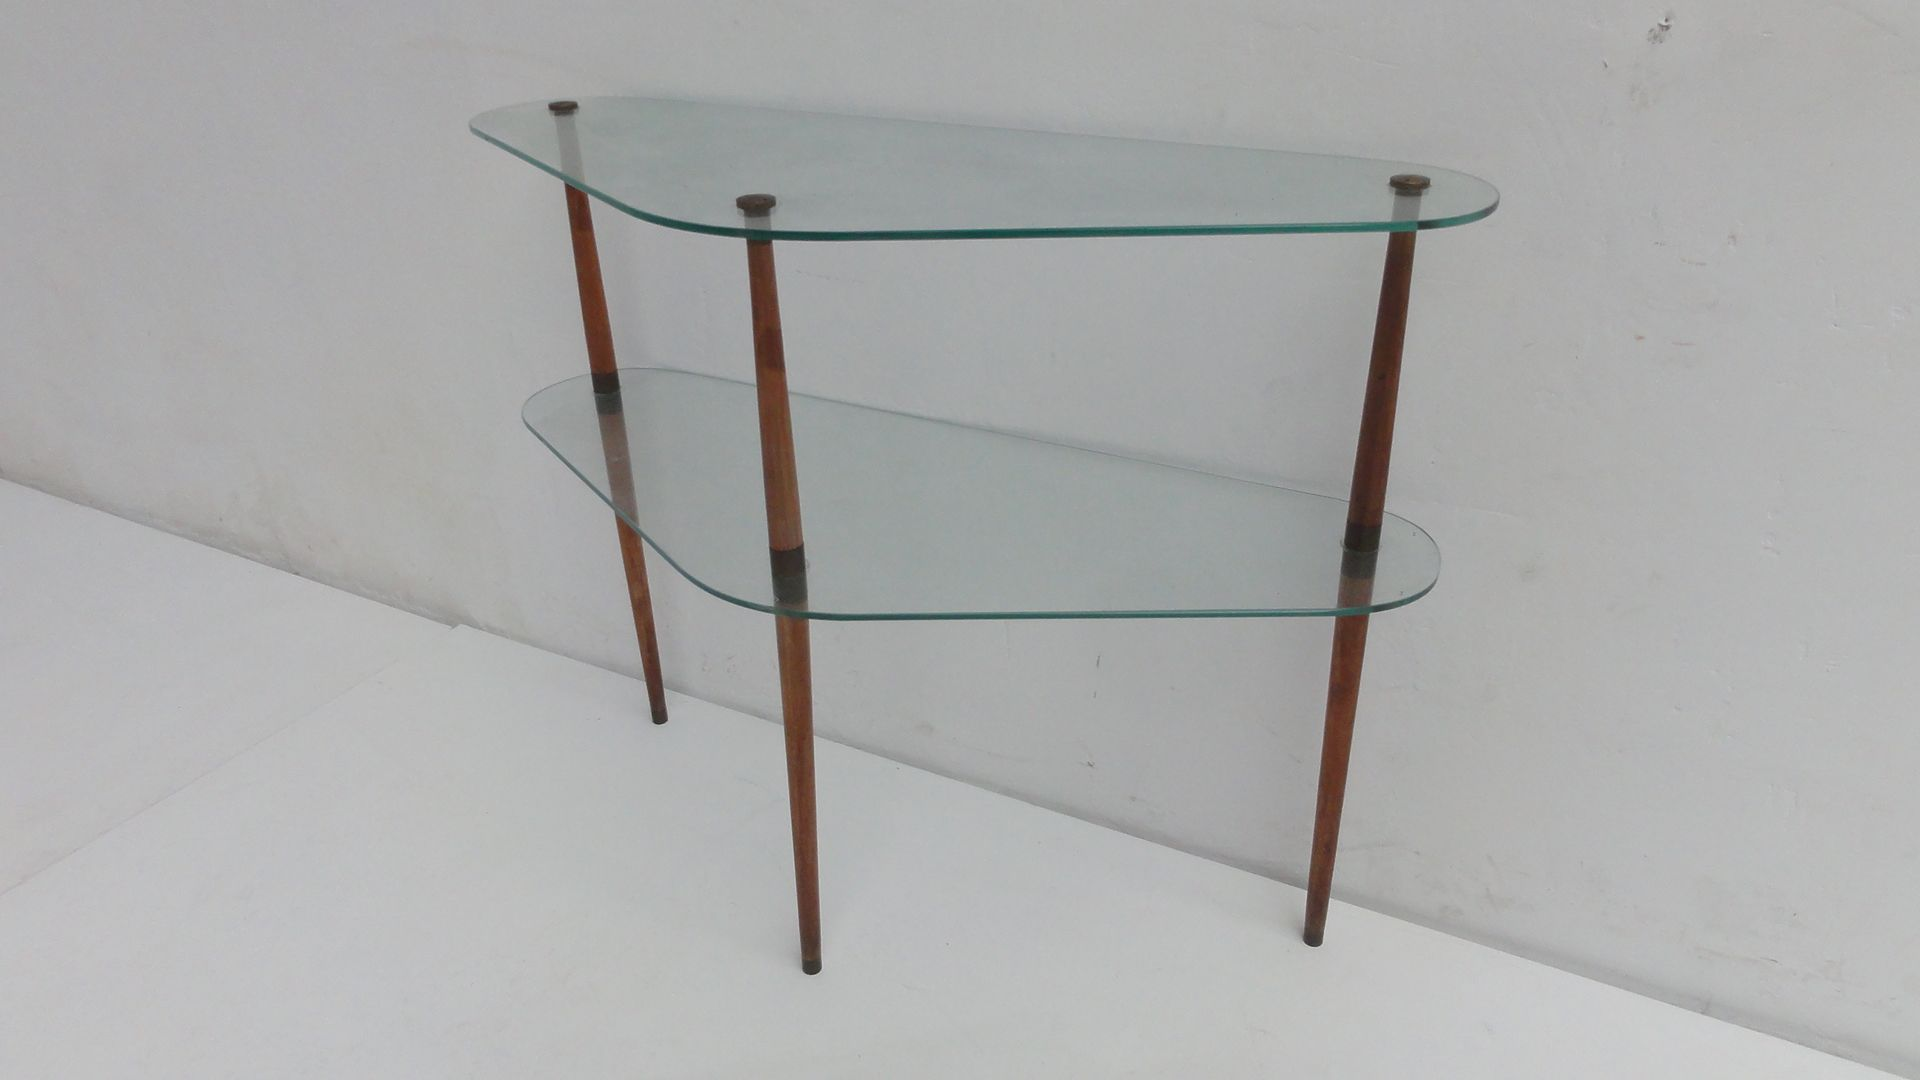 50s retro console table - photo #26